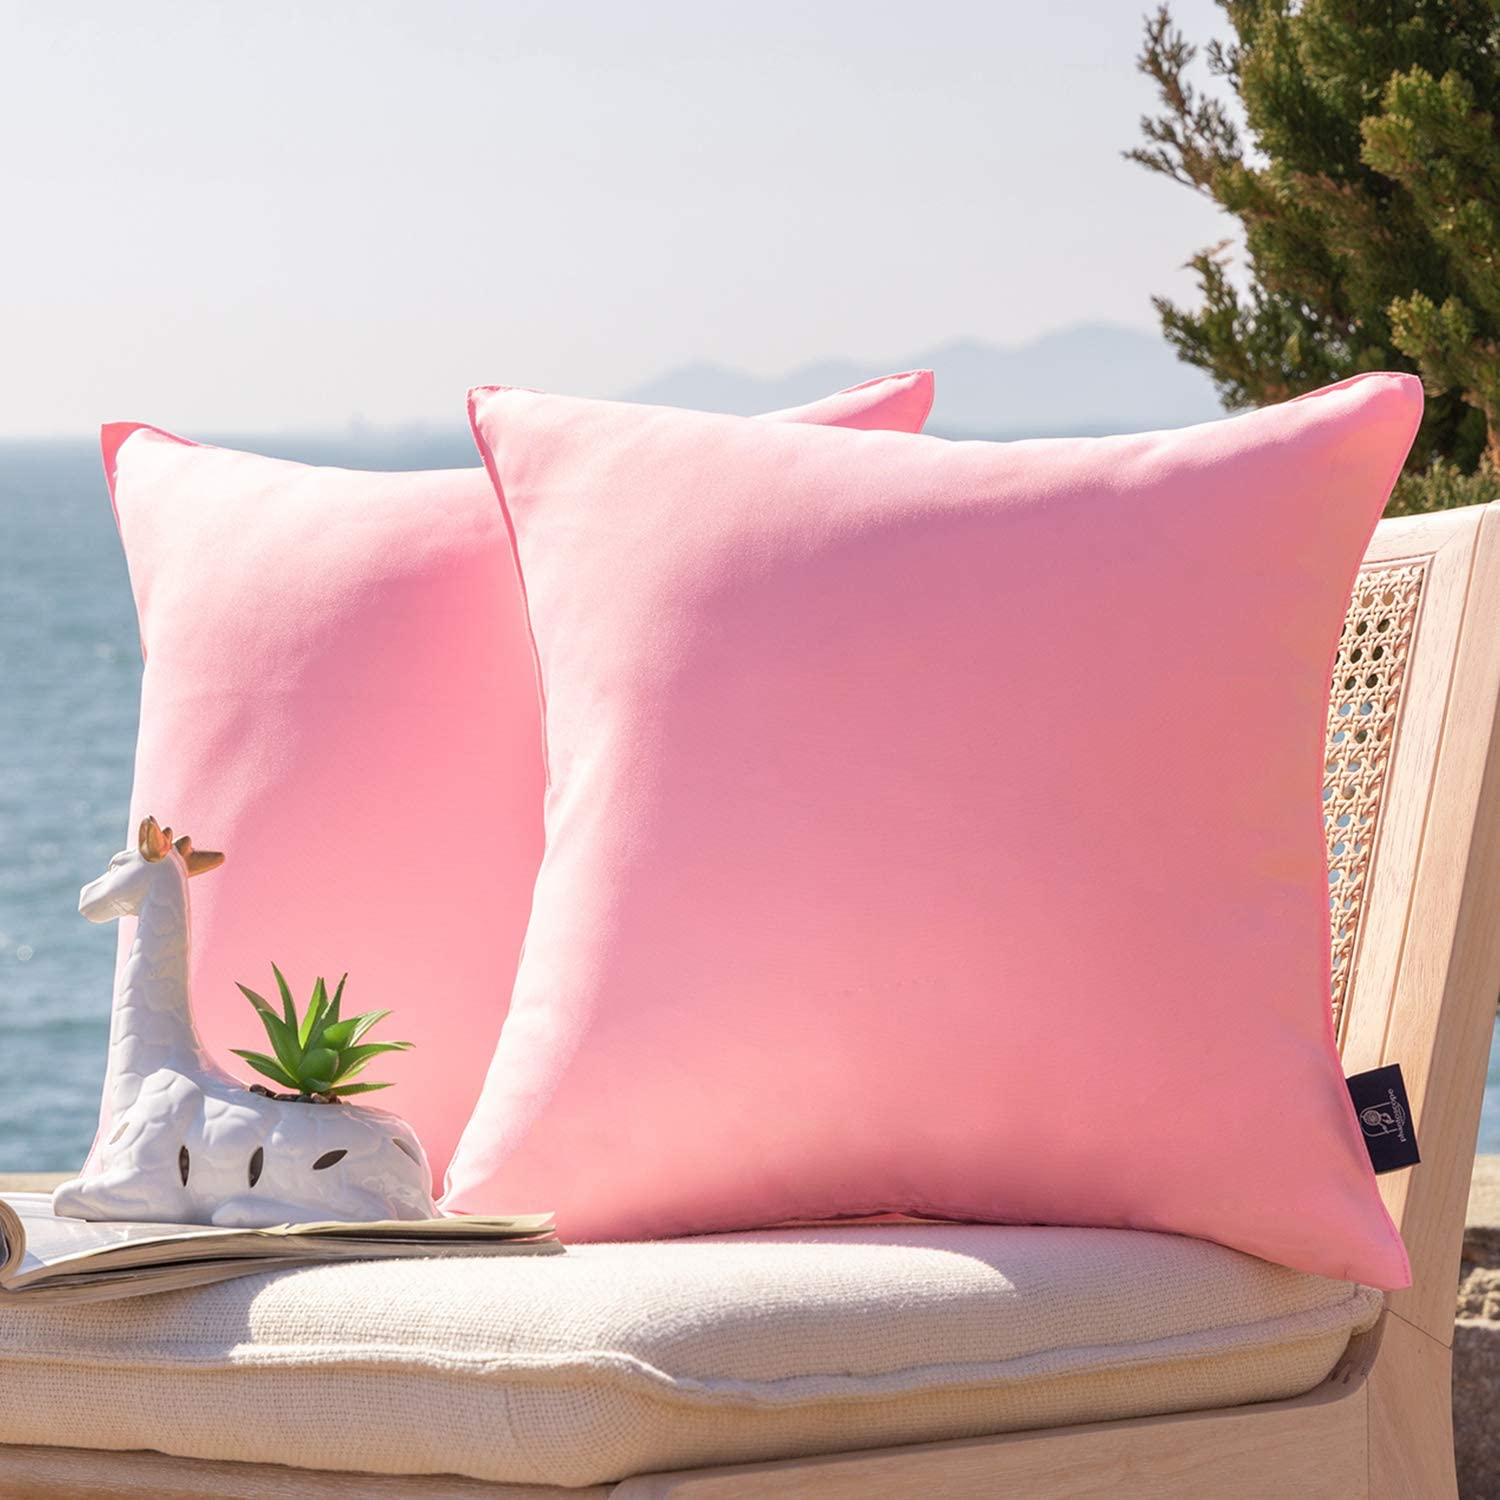 Phantoscope Pack of 2 Outdoor Waterproof Throw Pillow Covers Decorative Square Outdoor Pillows Cushion Case Patio Pillows for Couch Tent Christmas, Pink 18x18 inches 45x45 cm